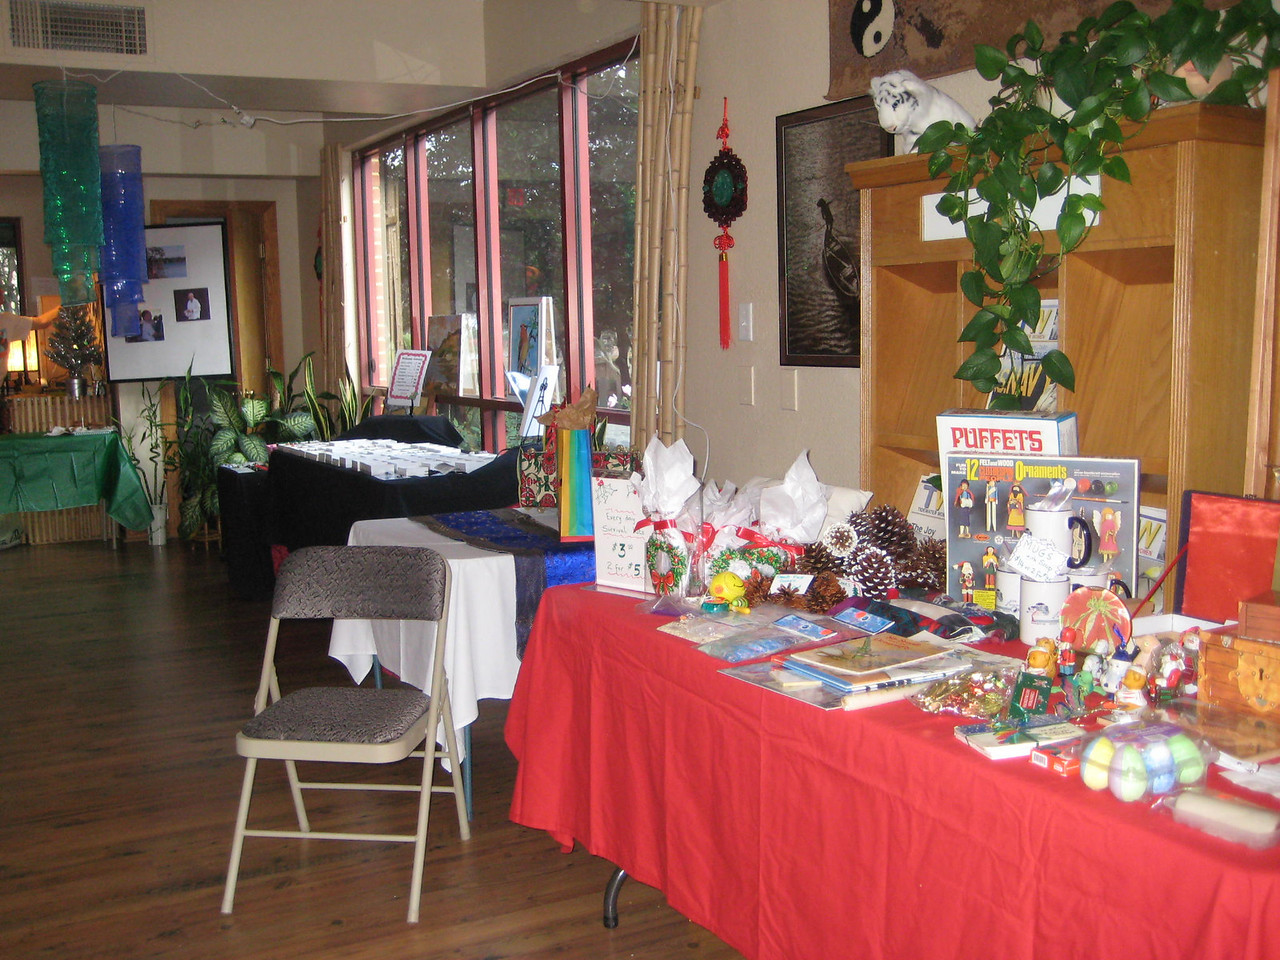 Bazaar Material for sale at BT's first Bazaar December 4, 2010